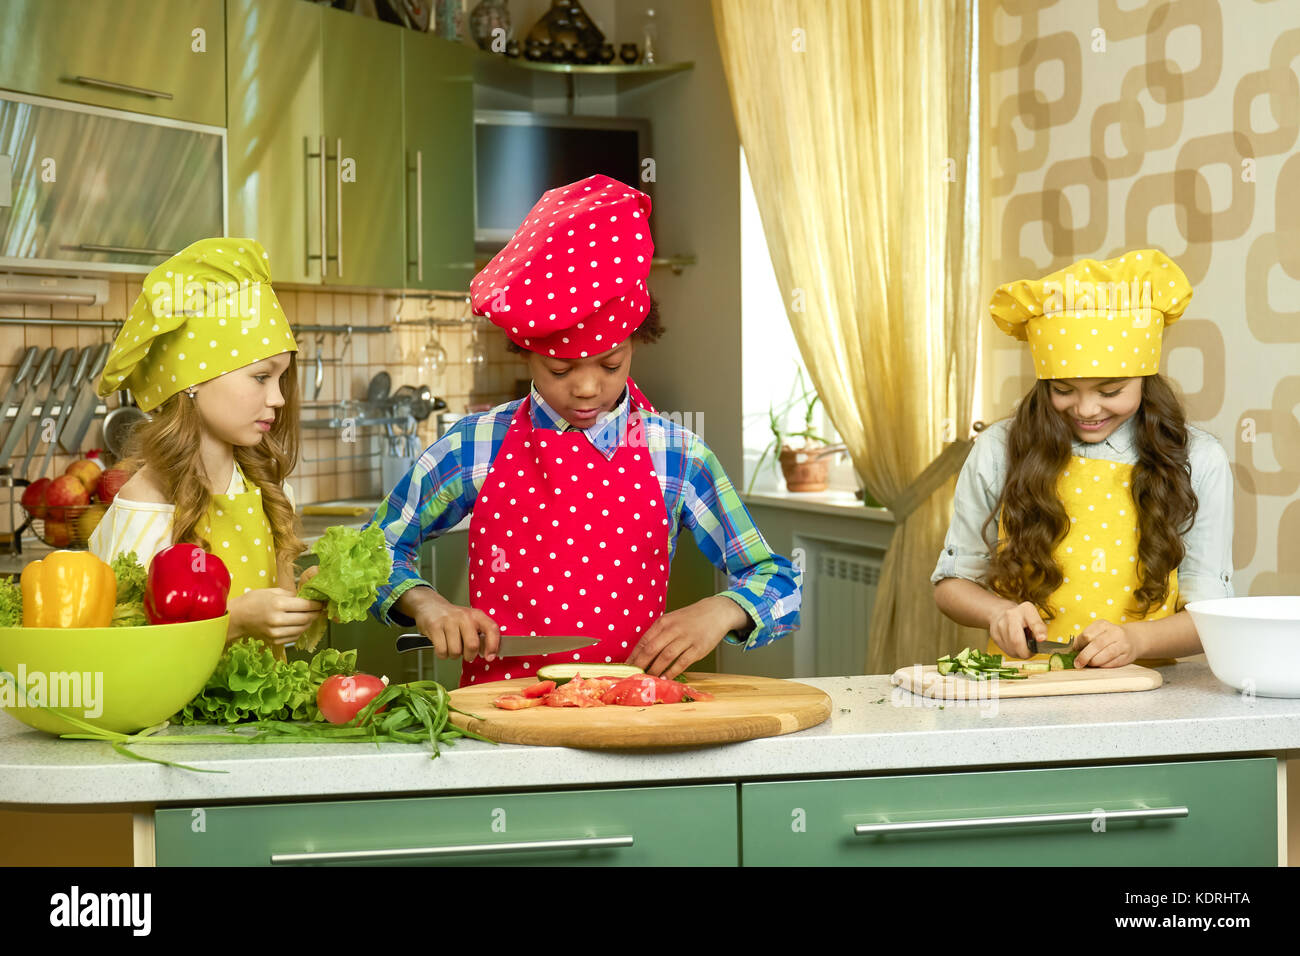 Children in the kitchen. - Stock Image